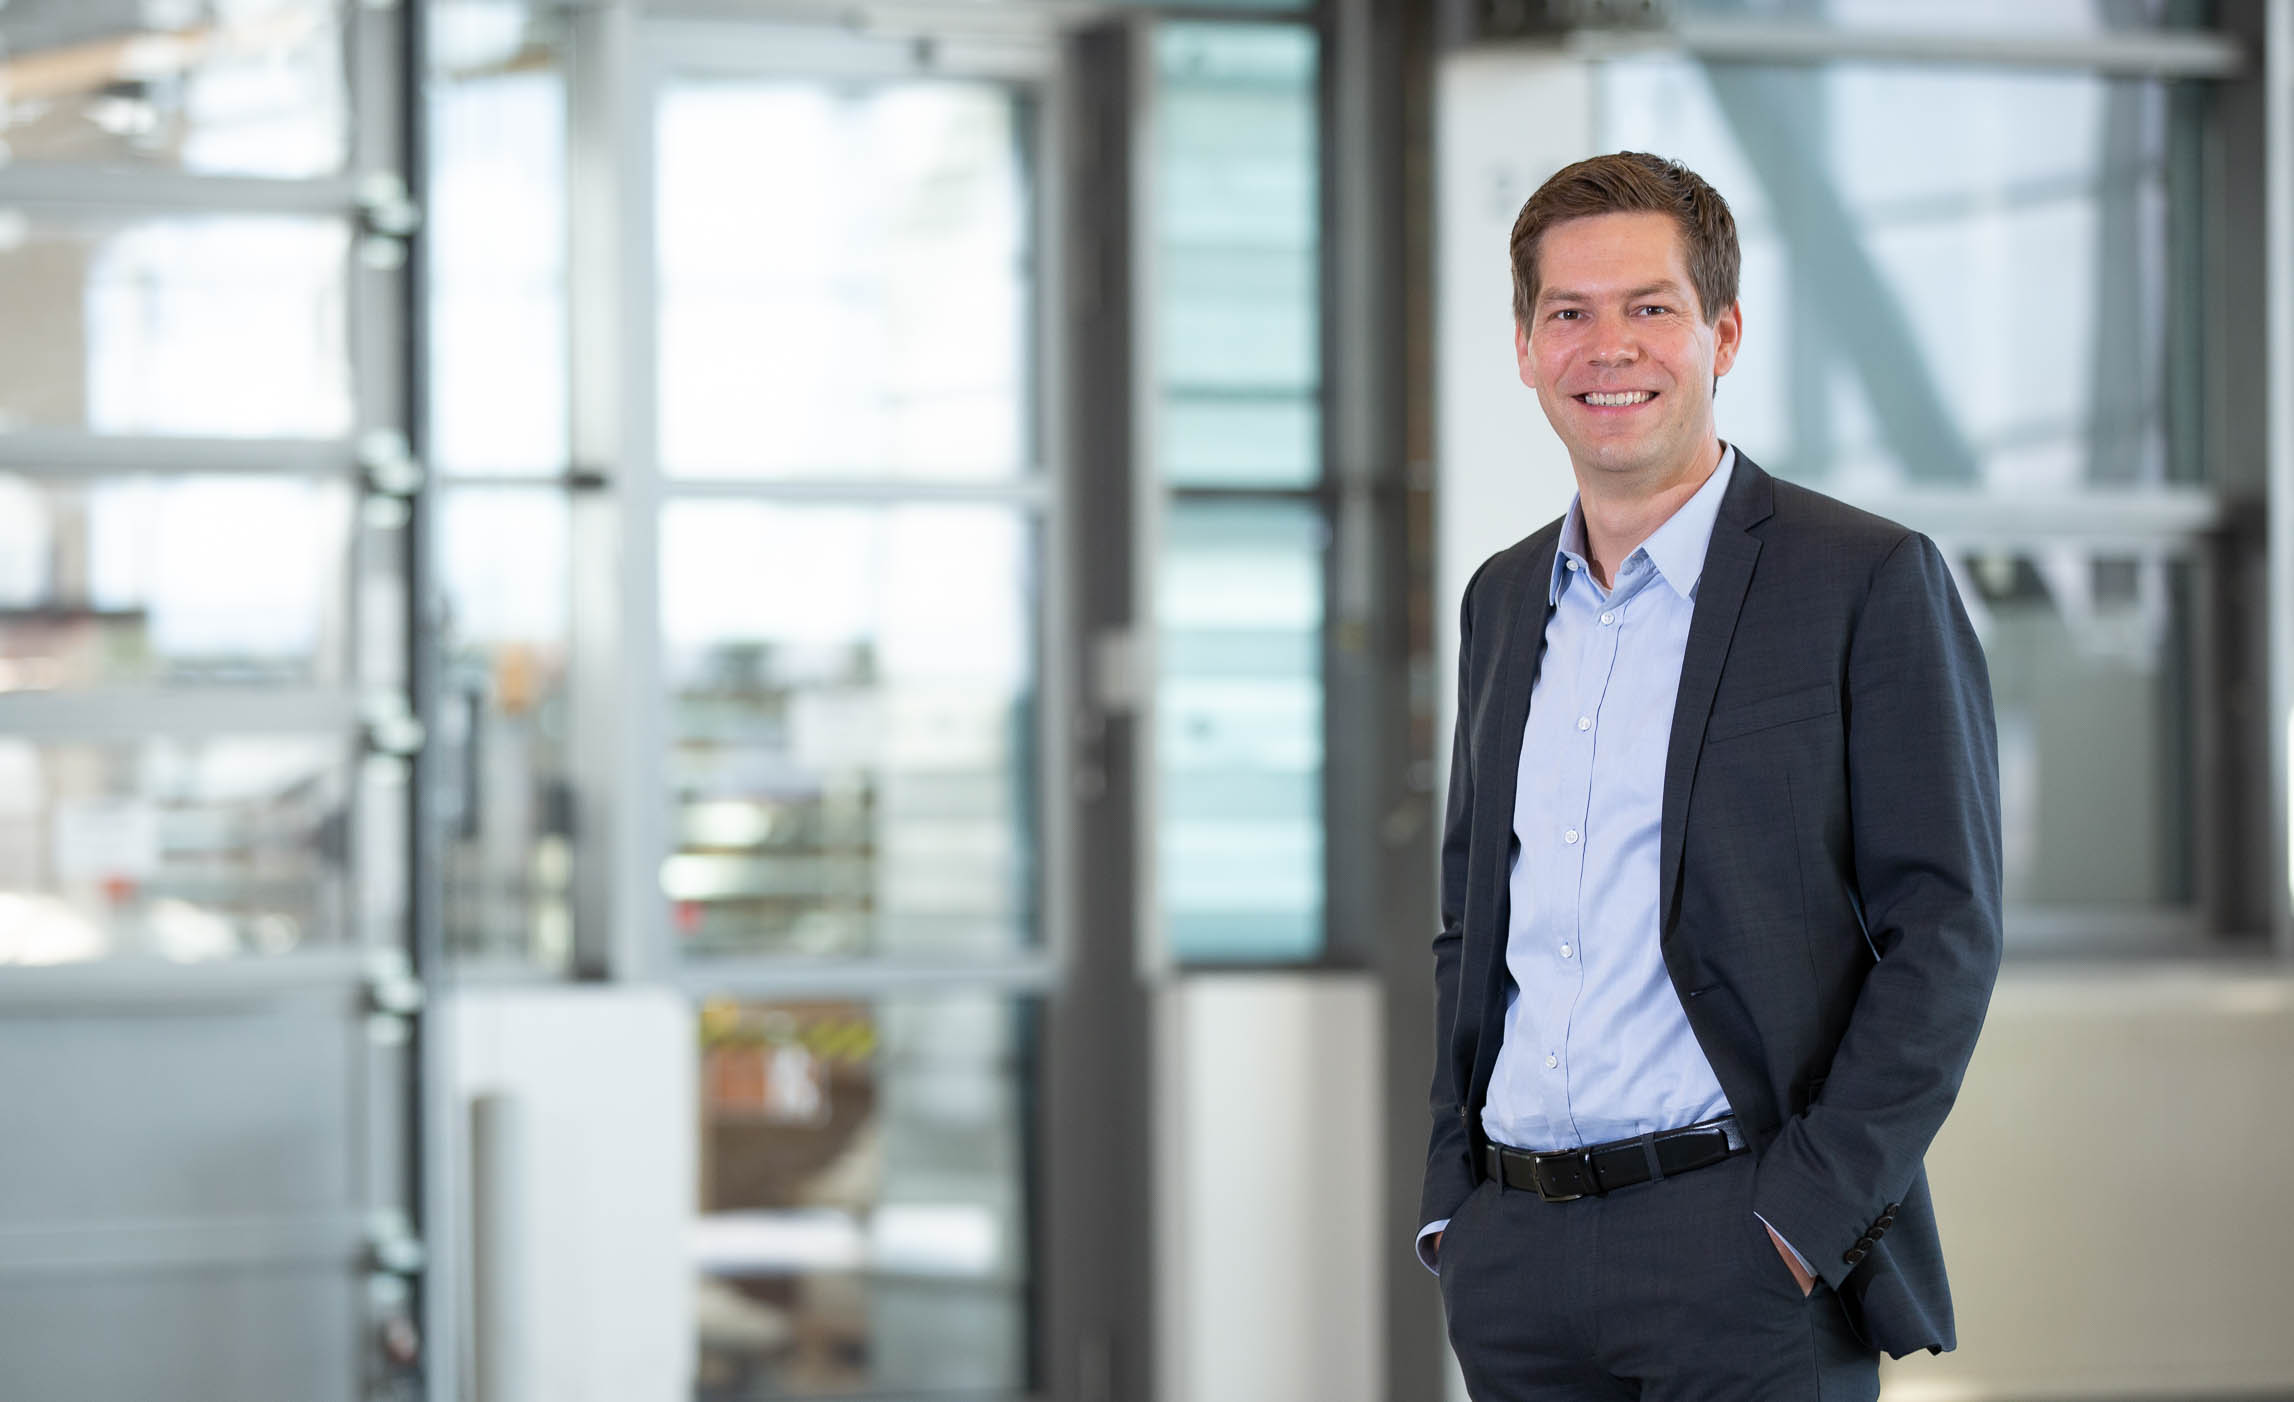 Torben Biehl, Head of GuideU and Lighting